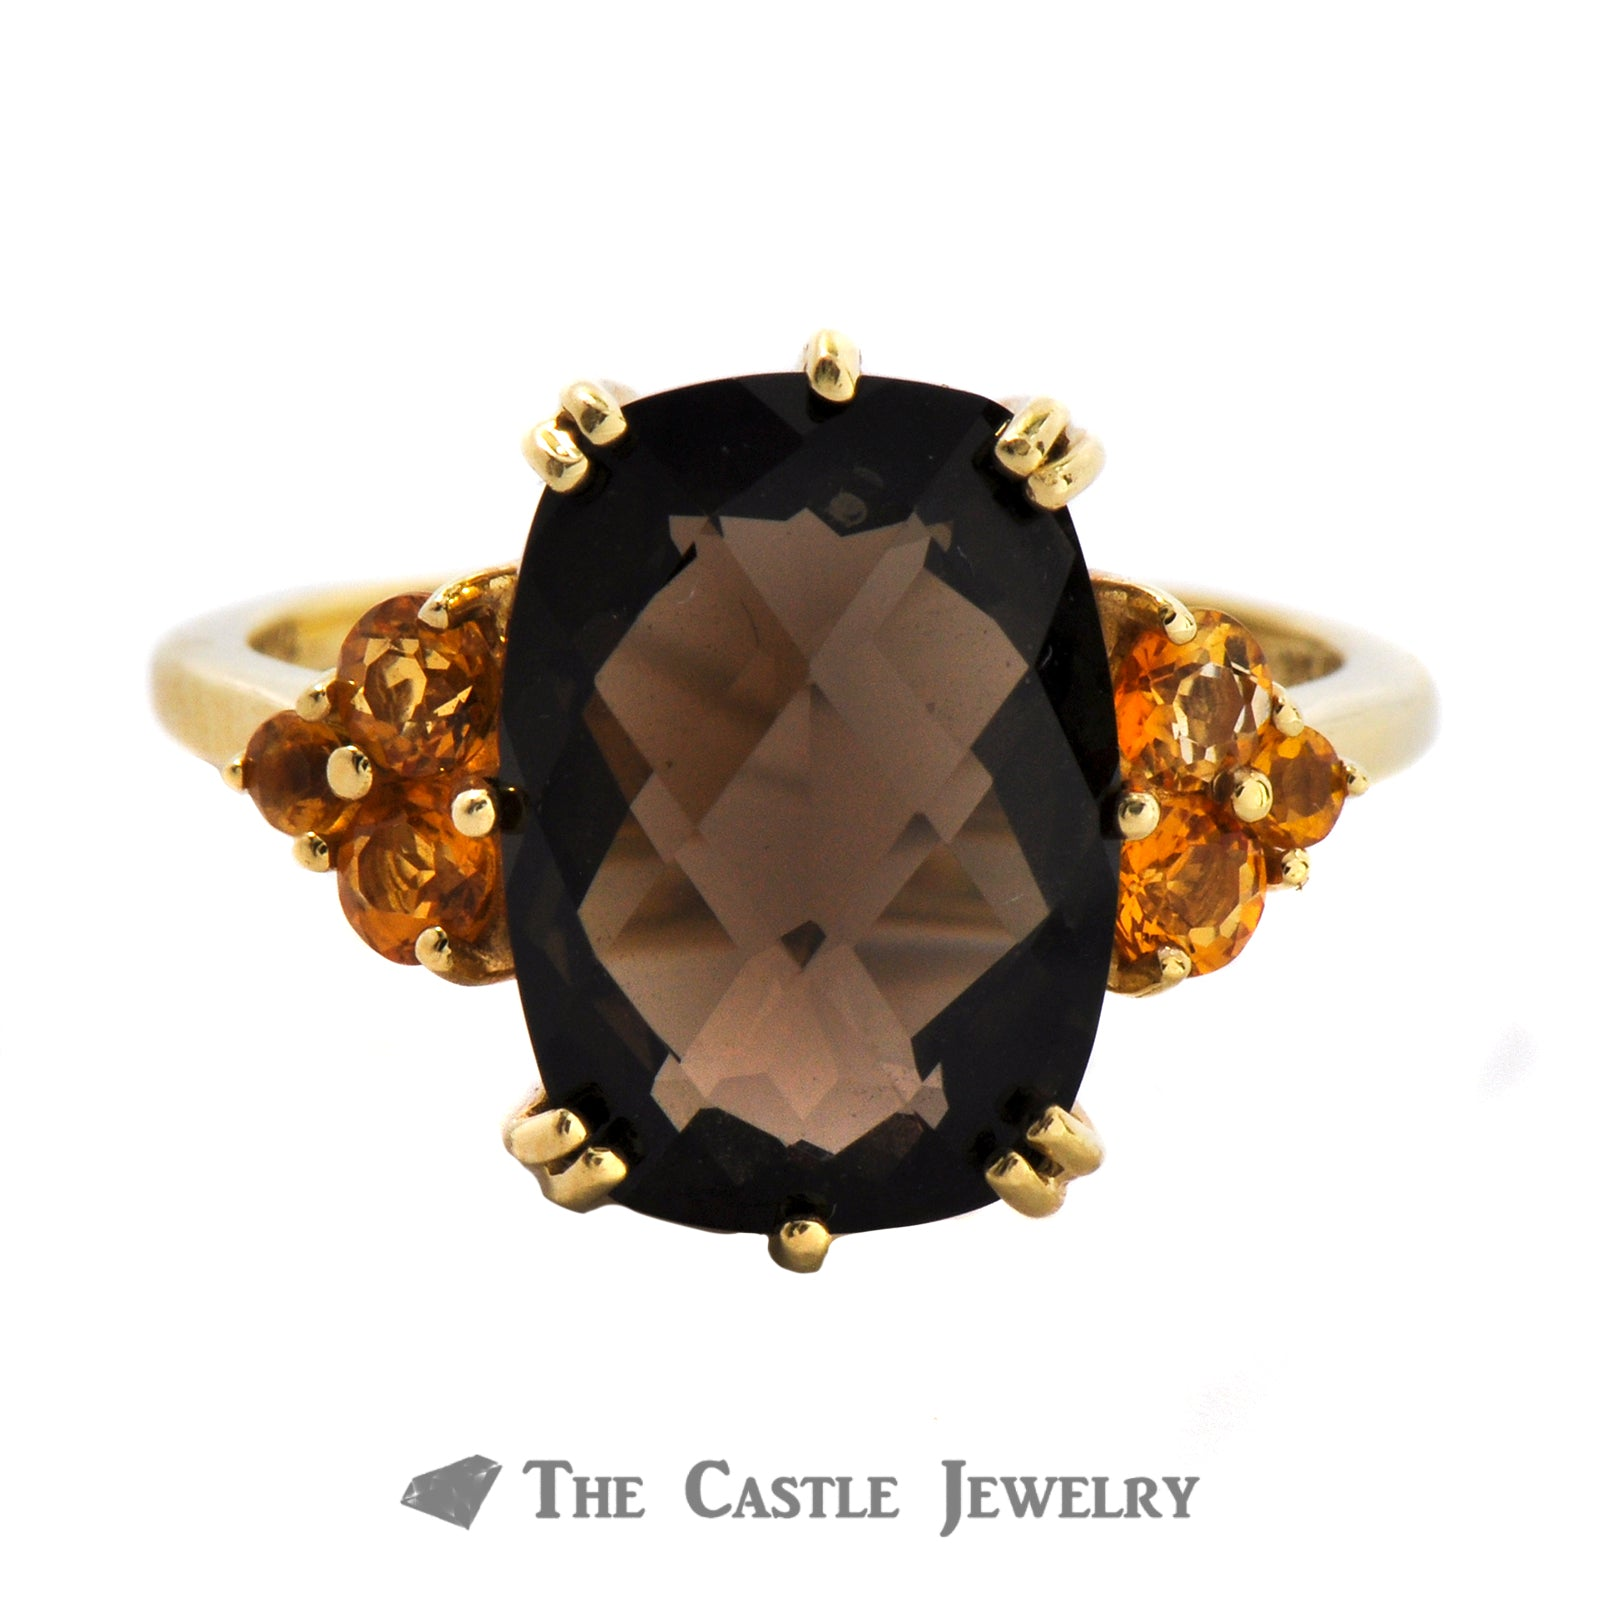 Fantasy Cut Smoky Quartz And Citrine Ring In 14K Yellow Gold